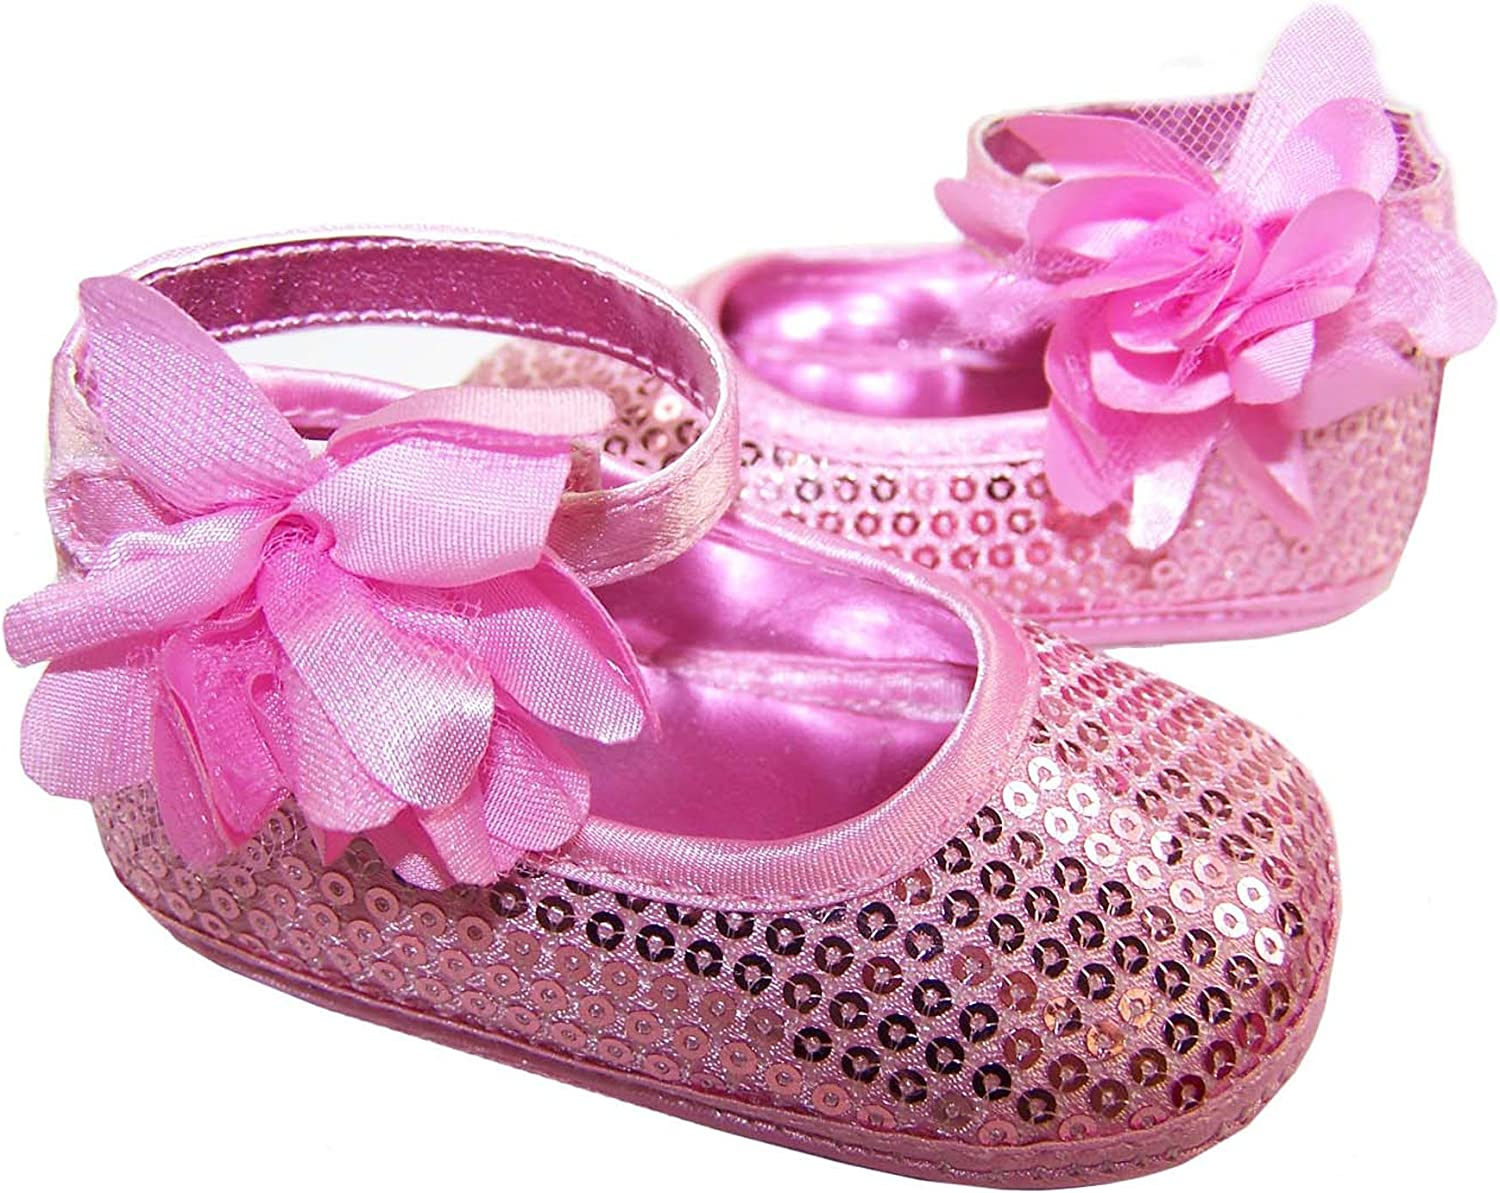 Baby Girl's Soft Sole Pink Sparkly Shoe